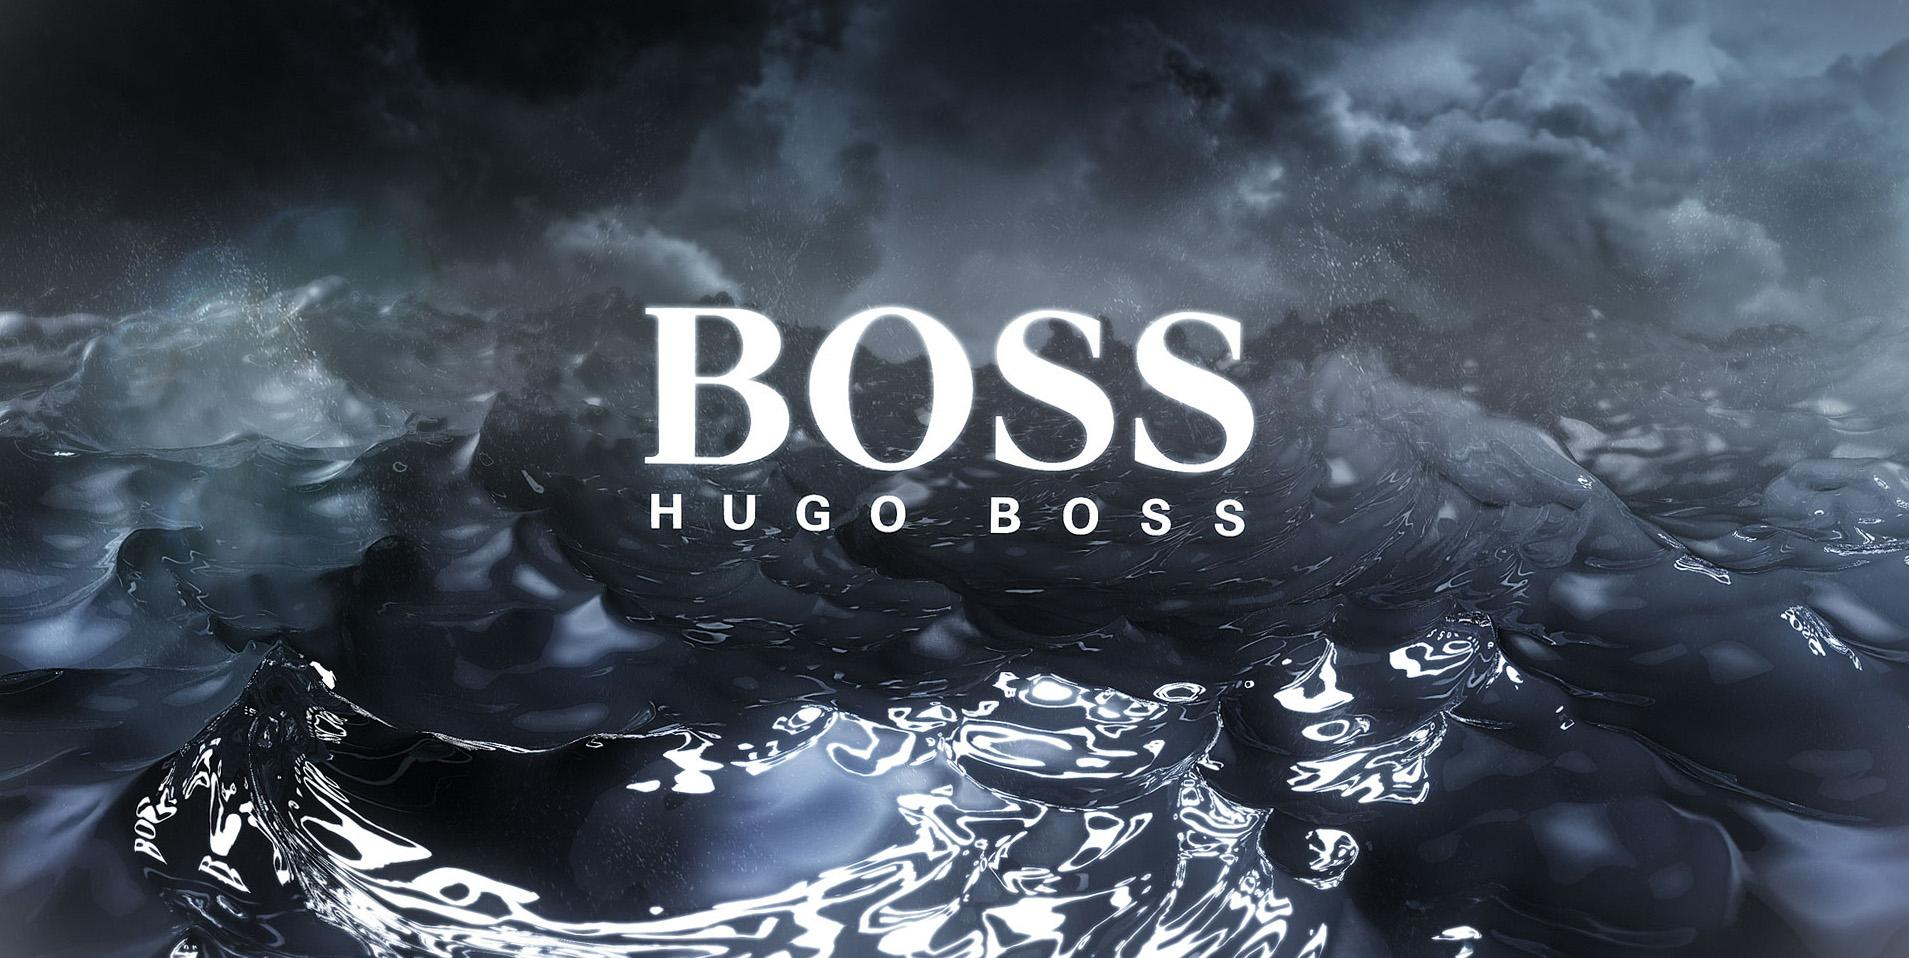 Hugo Boss Wallpaper